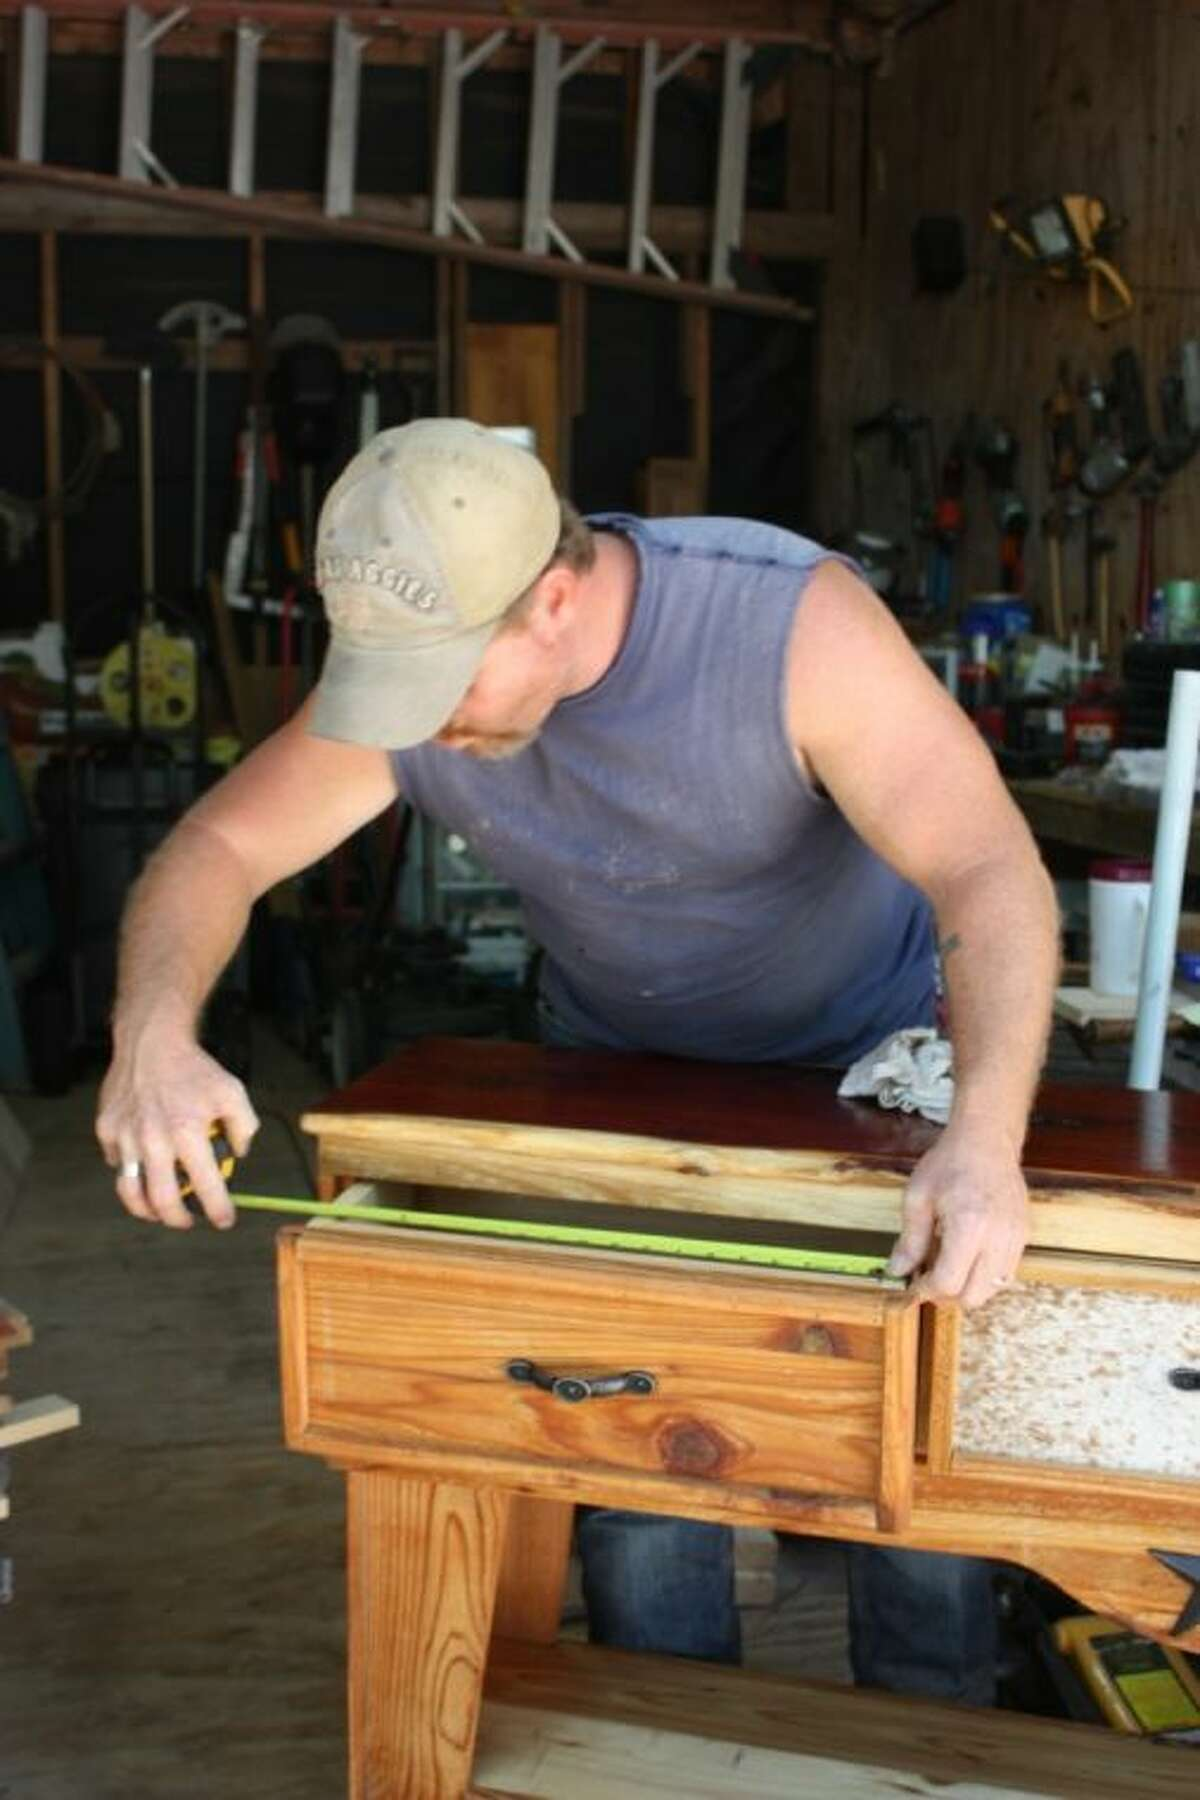 Mike Darnell works every day of the week building custom woodwork and selling his products on the roadside, at rodeos and festivals. His attention to detail on the solid wood pieces keep customers coming back to shop.